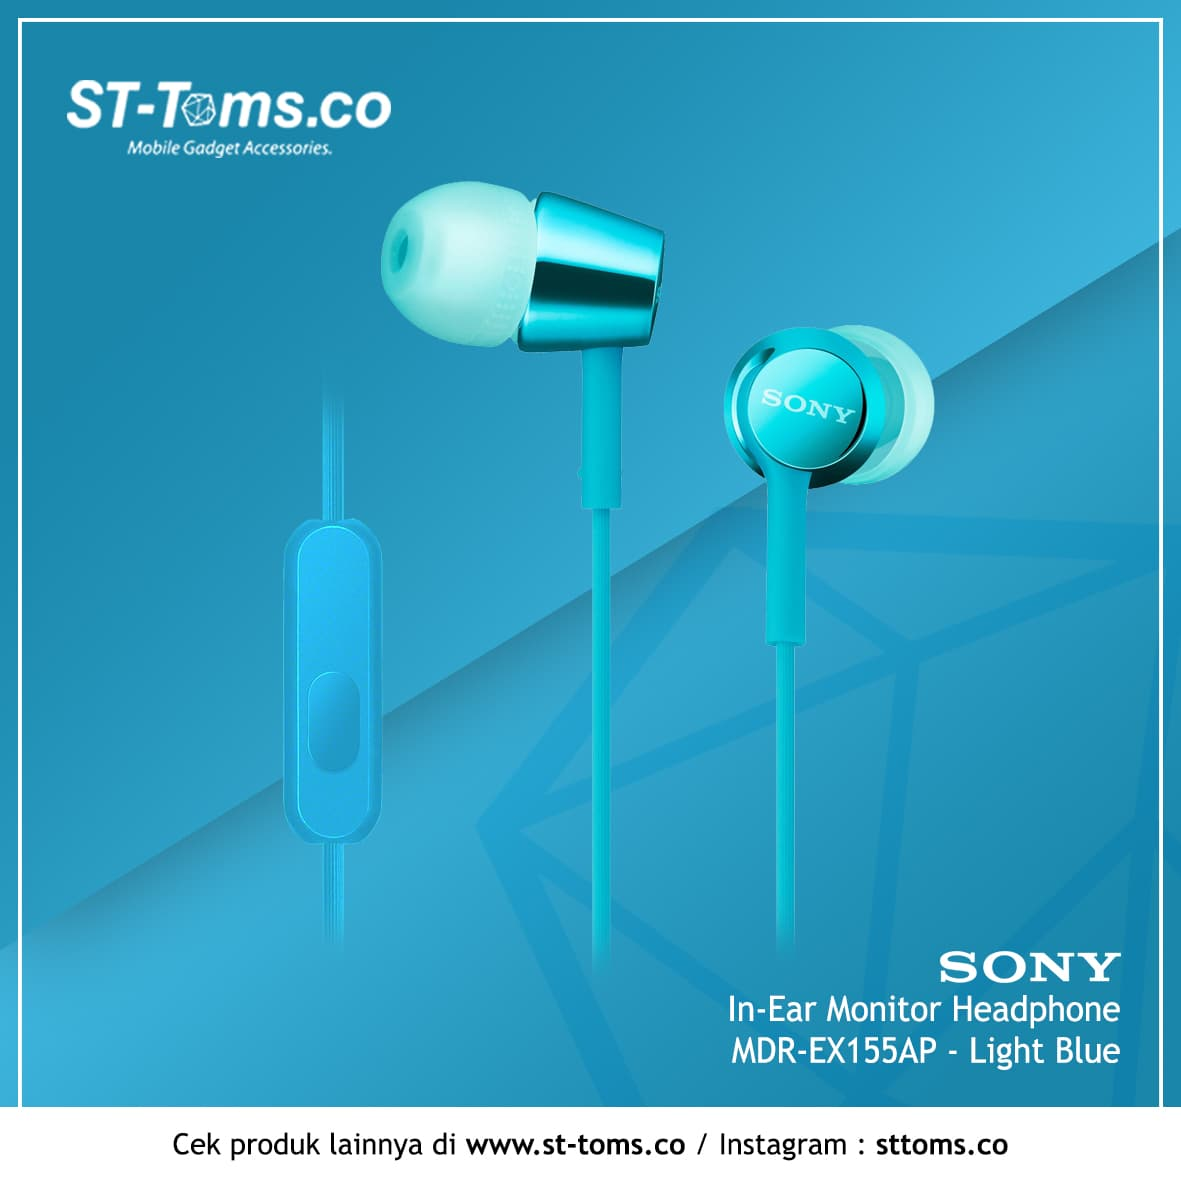 Sony In Ear Headset Mdr Ex15 Hotpink Daftar Harga Terbaru Headphone Ex9lp White Jual Monitor Ex155ap Ex 155ap Teal Earphone St Toms Store Tokopedia